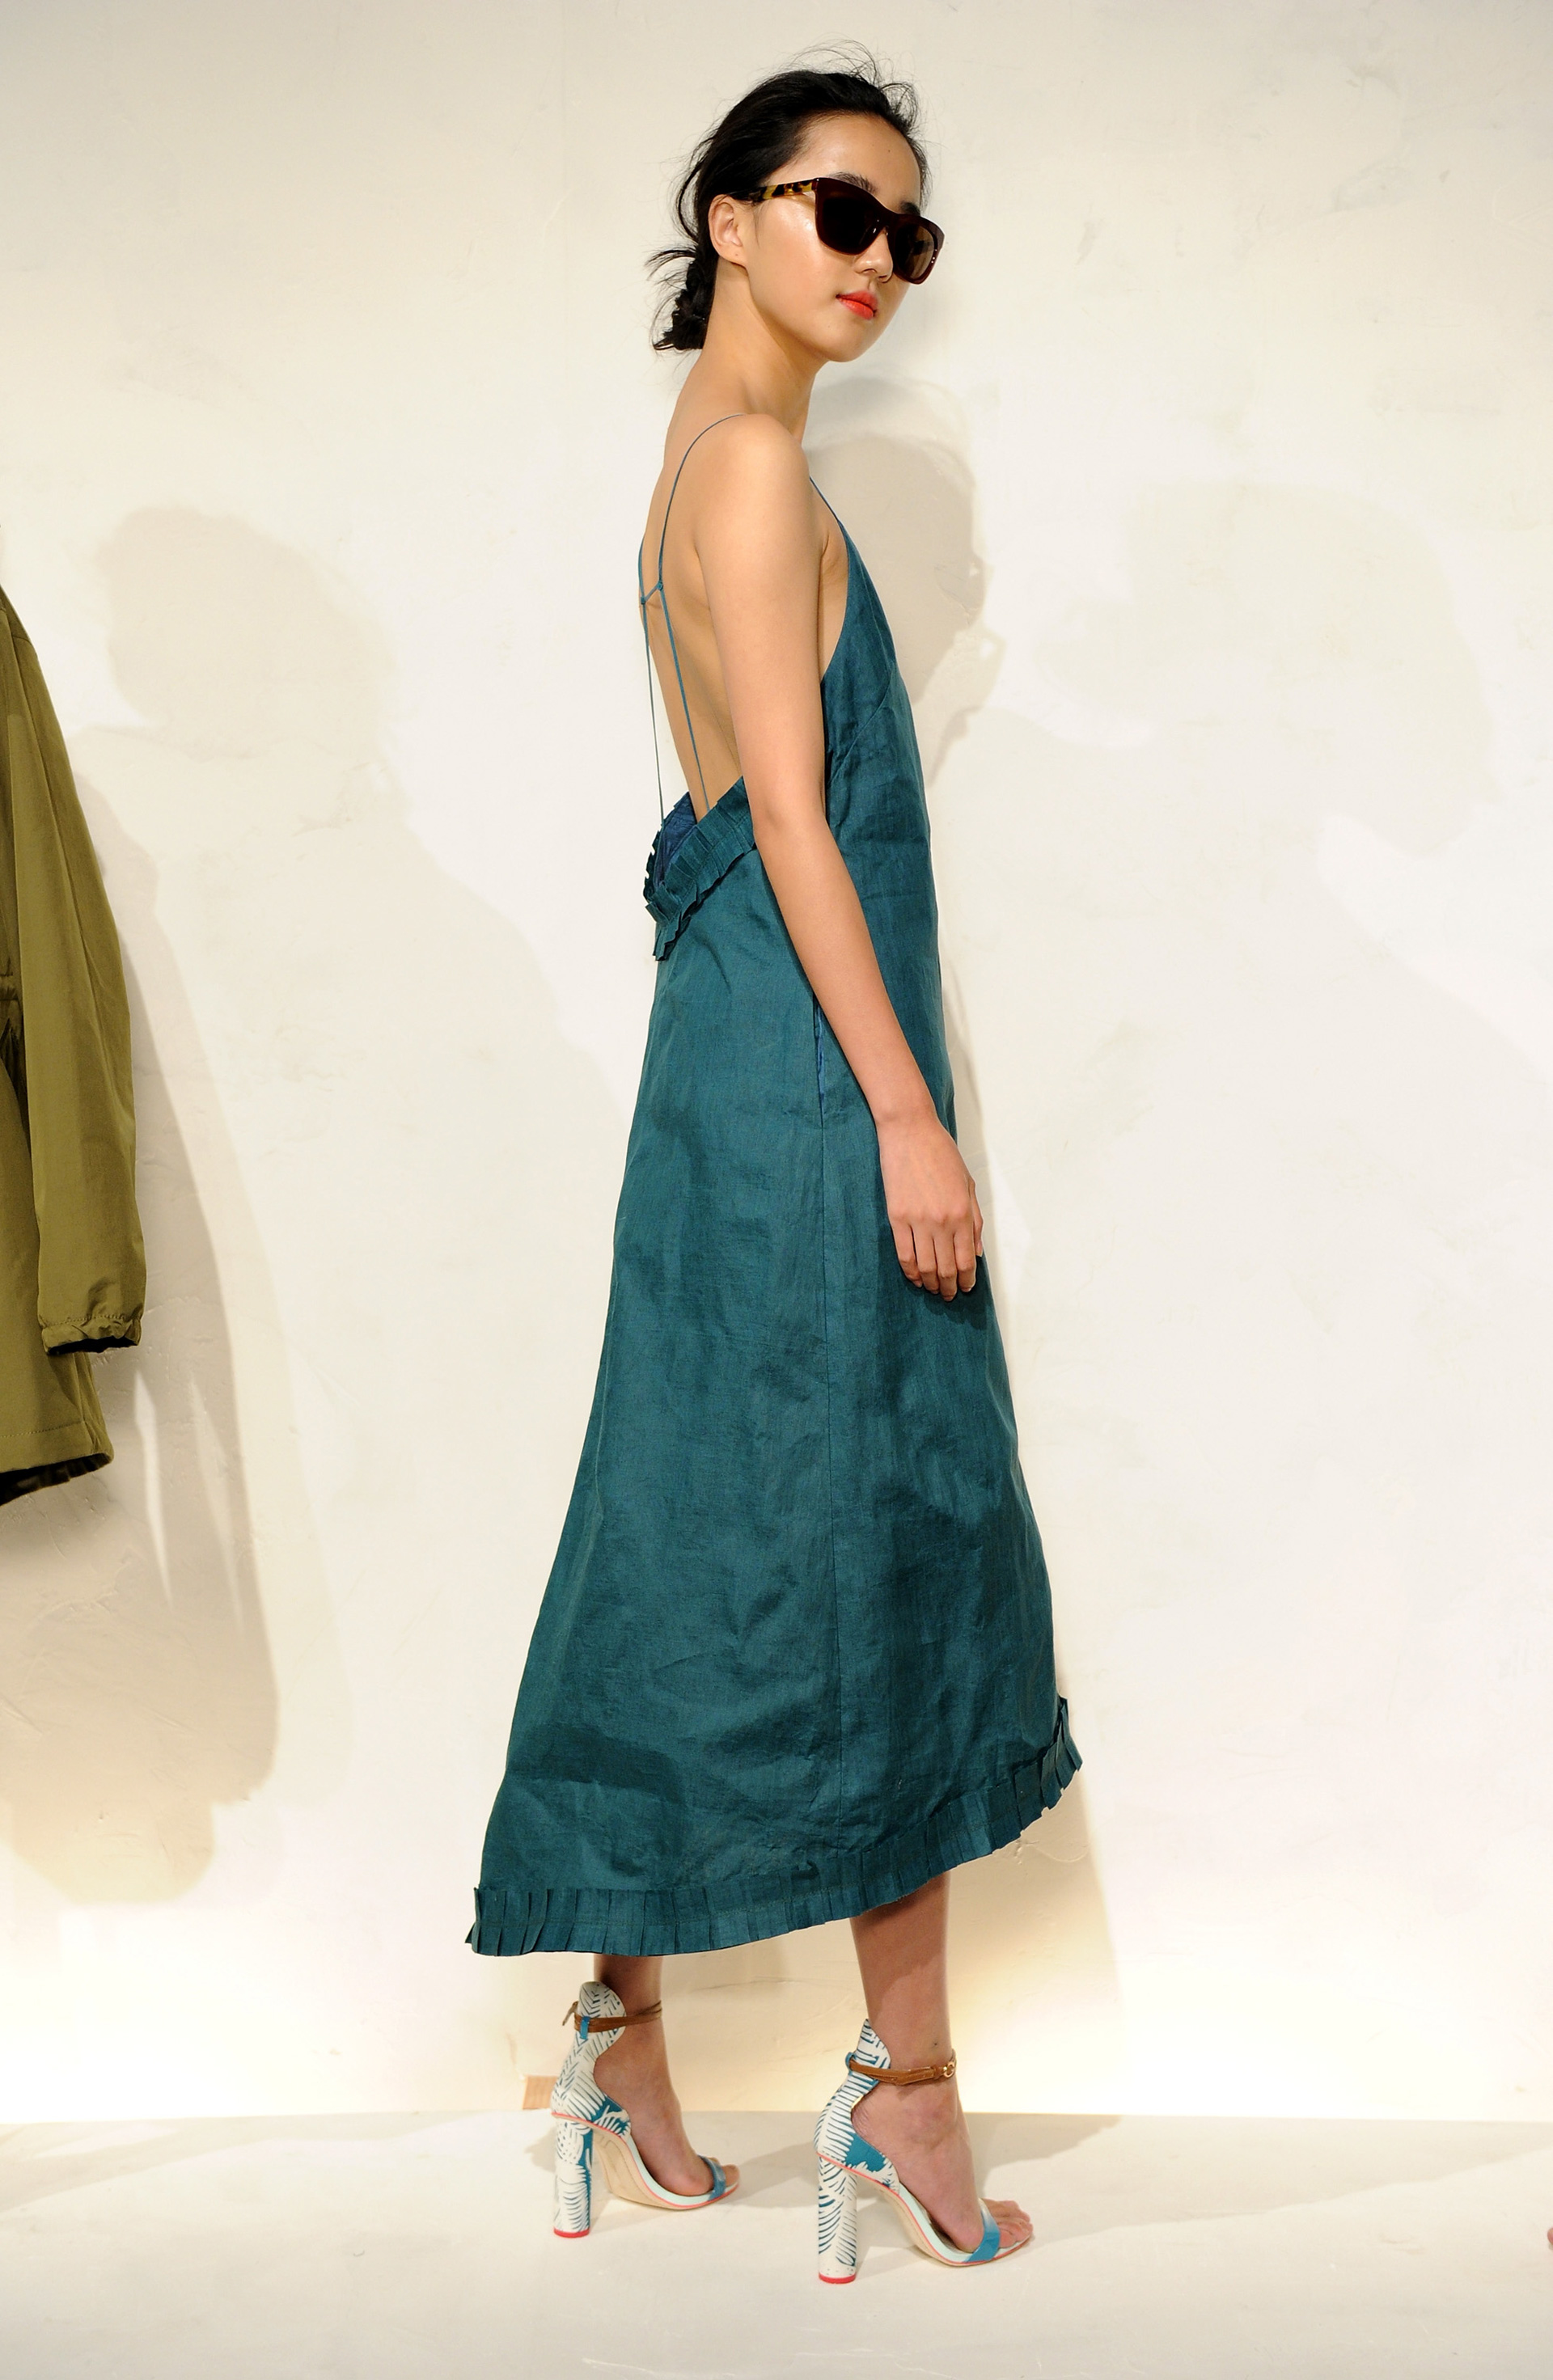 2015 J.Crew collection pieces 4